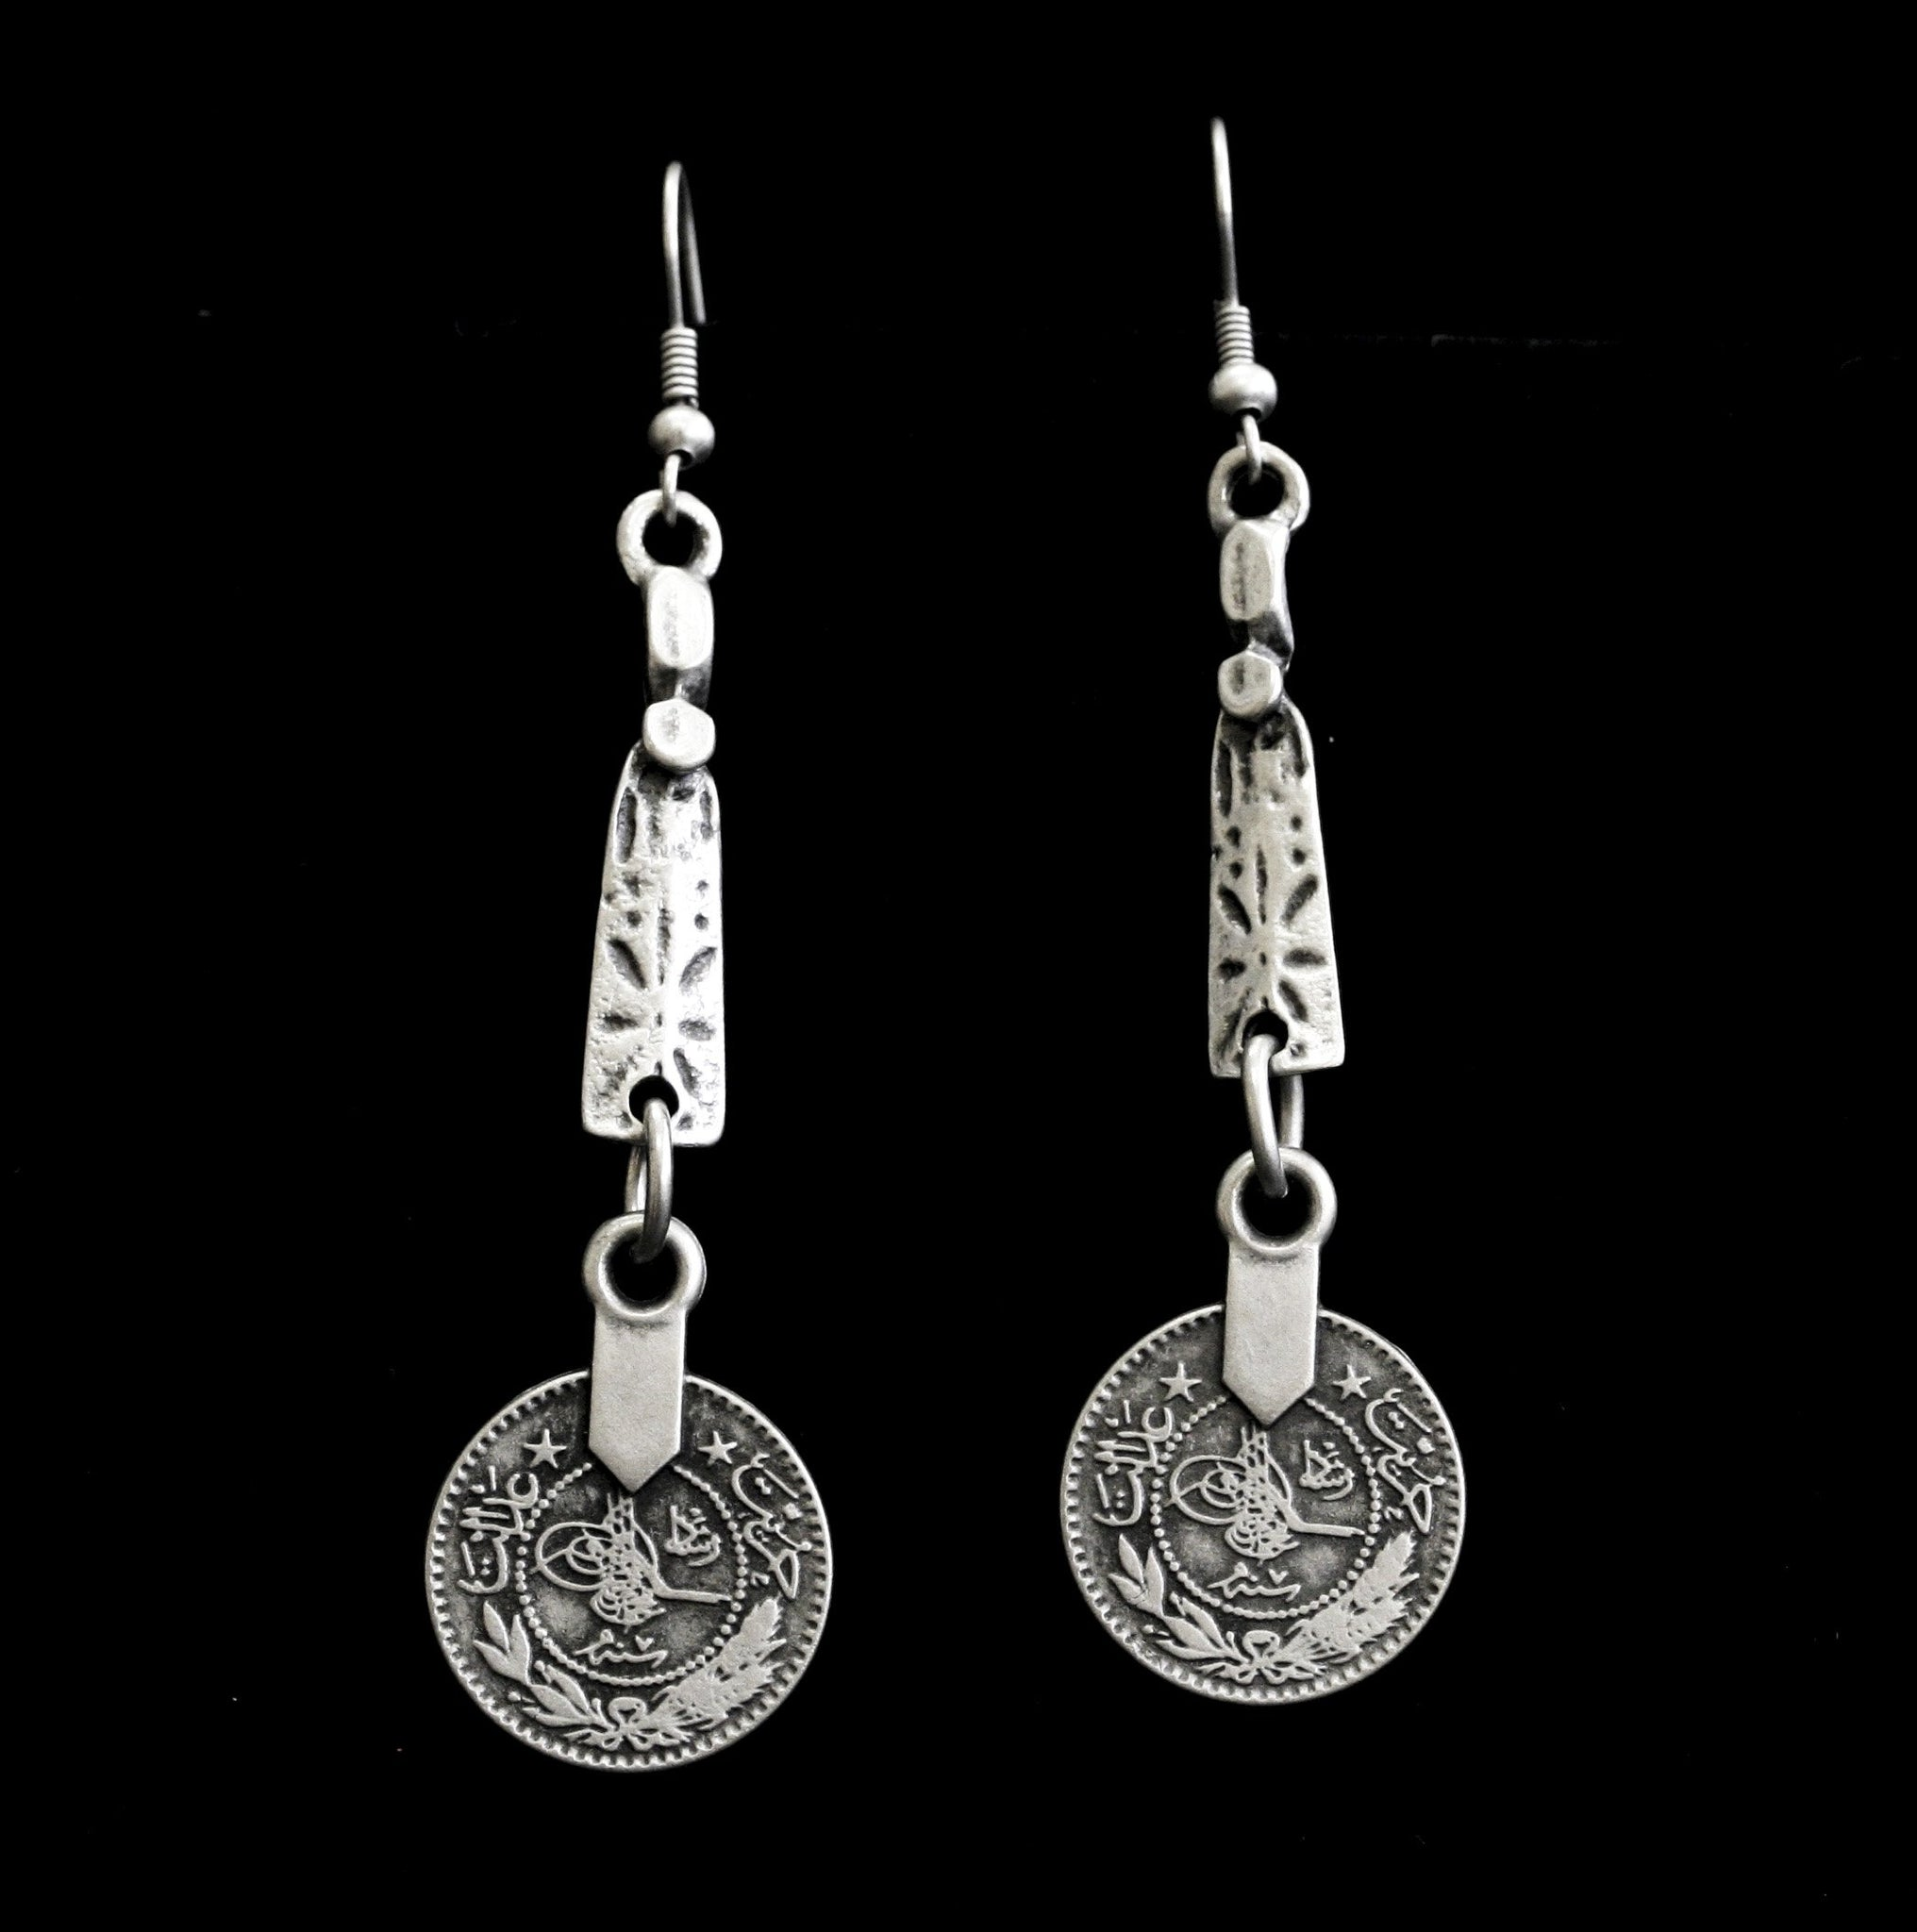 Pewter Earrings - SKU# 4694